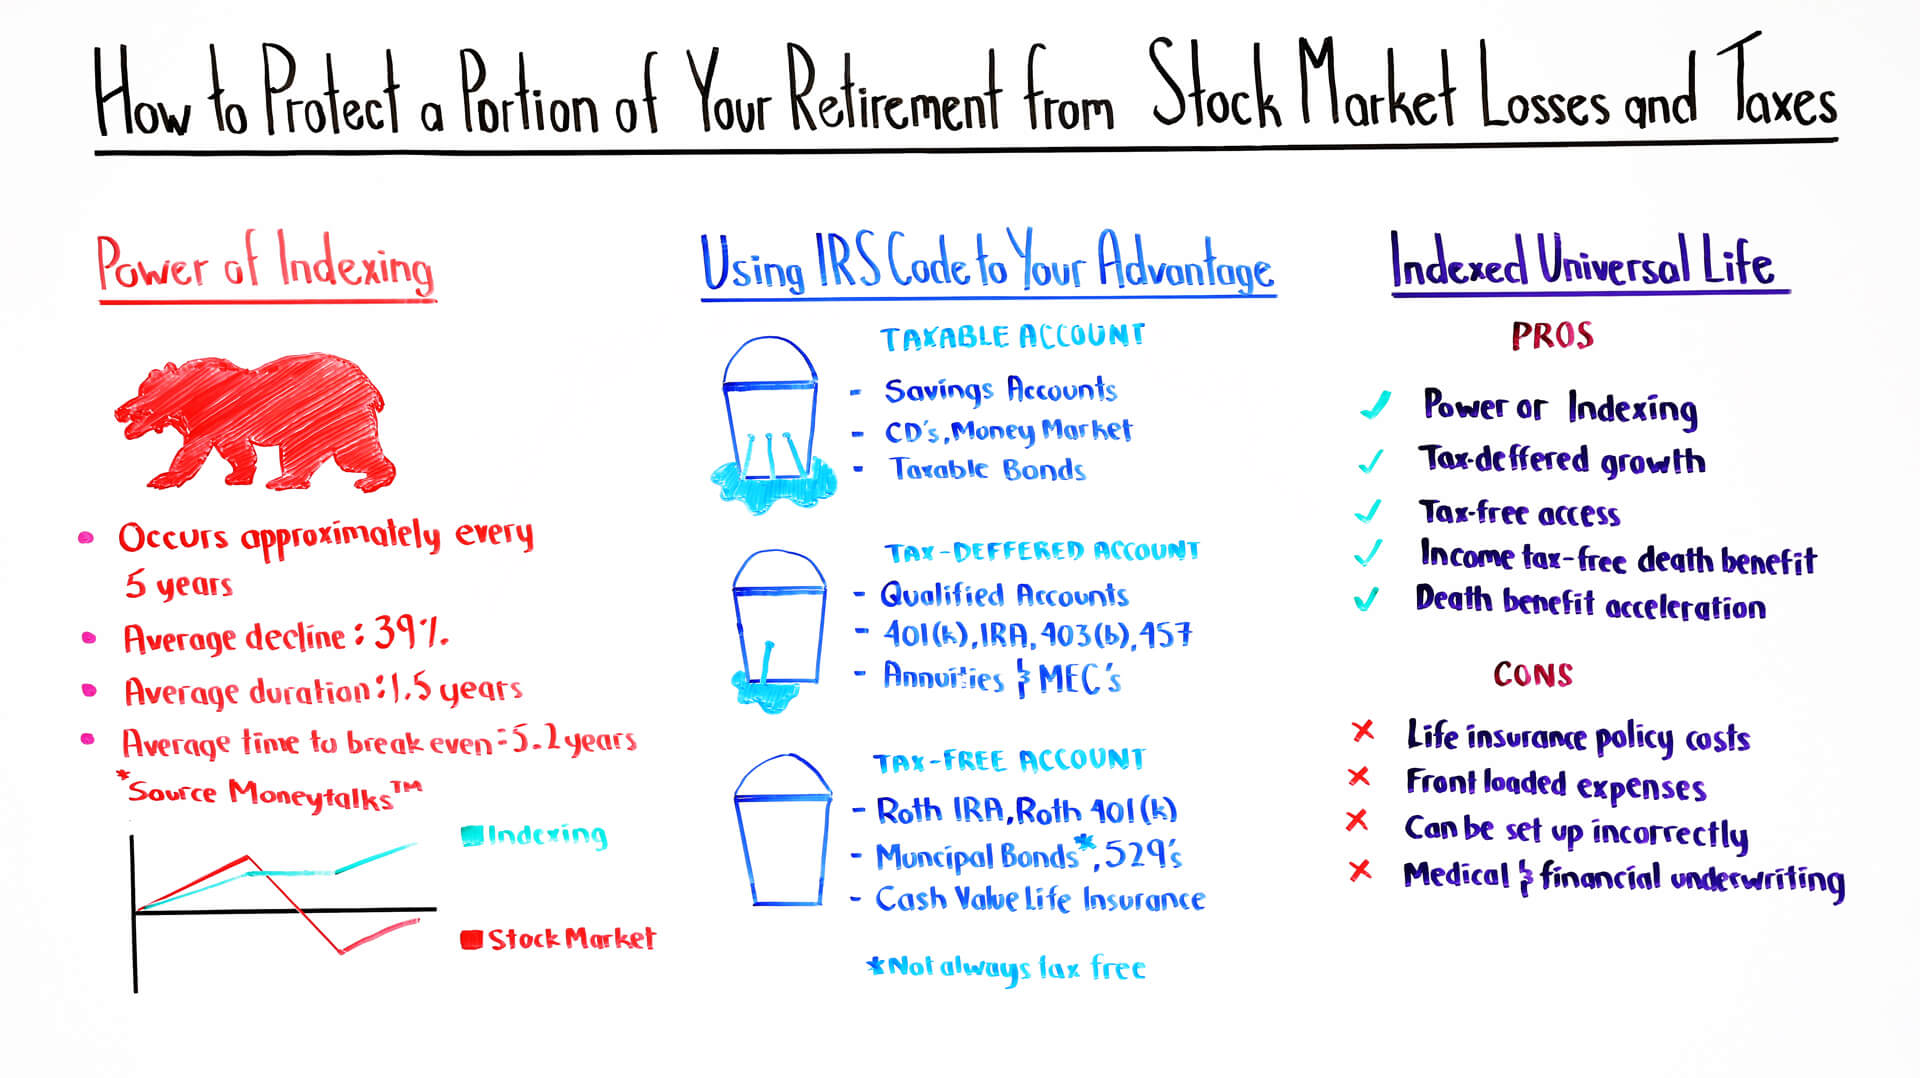 How to Protect a Portion of Your Retirement from Stock Market Losses & Taxes